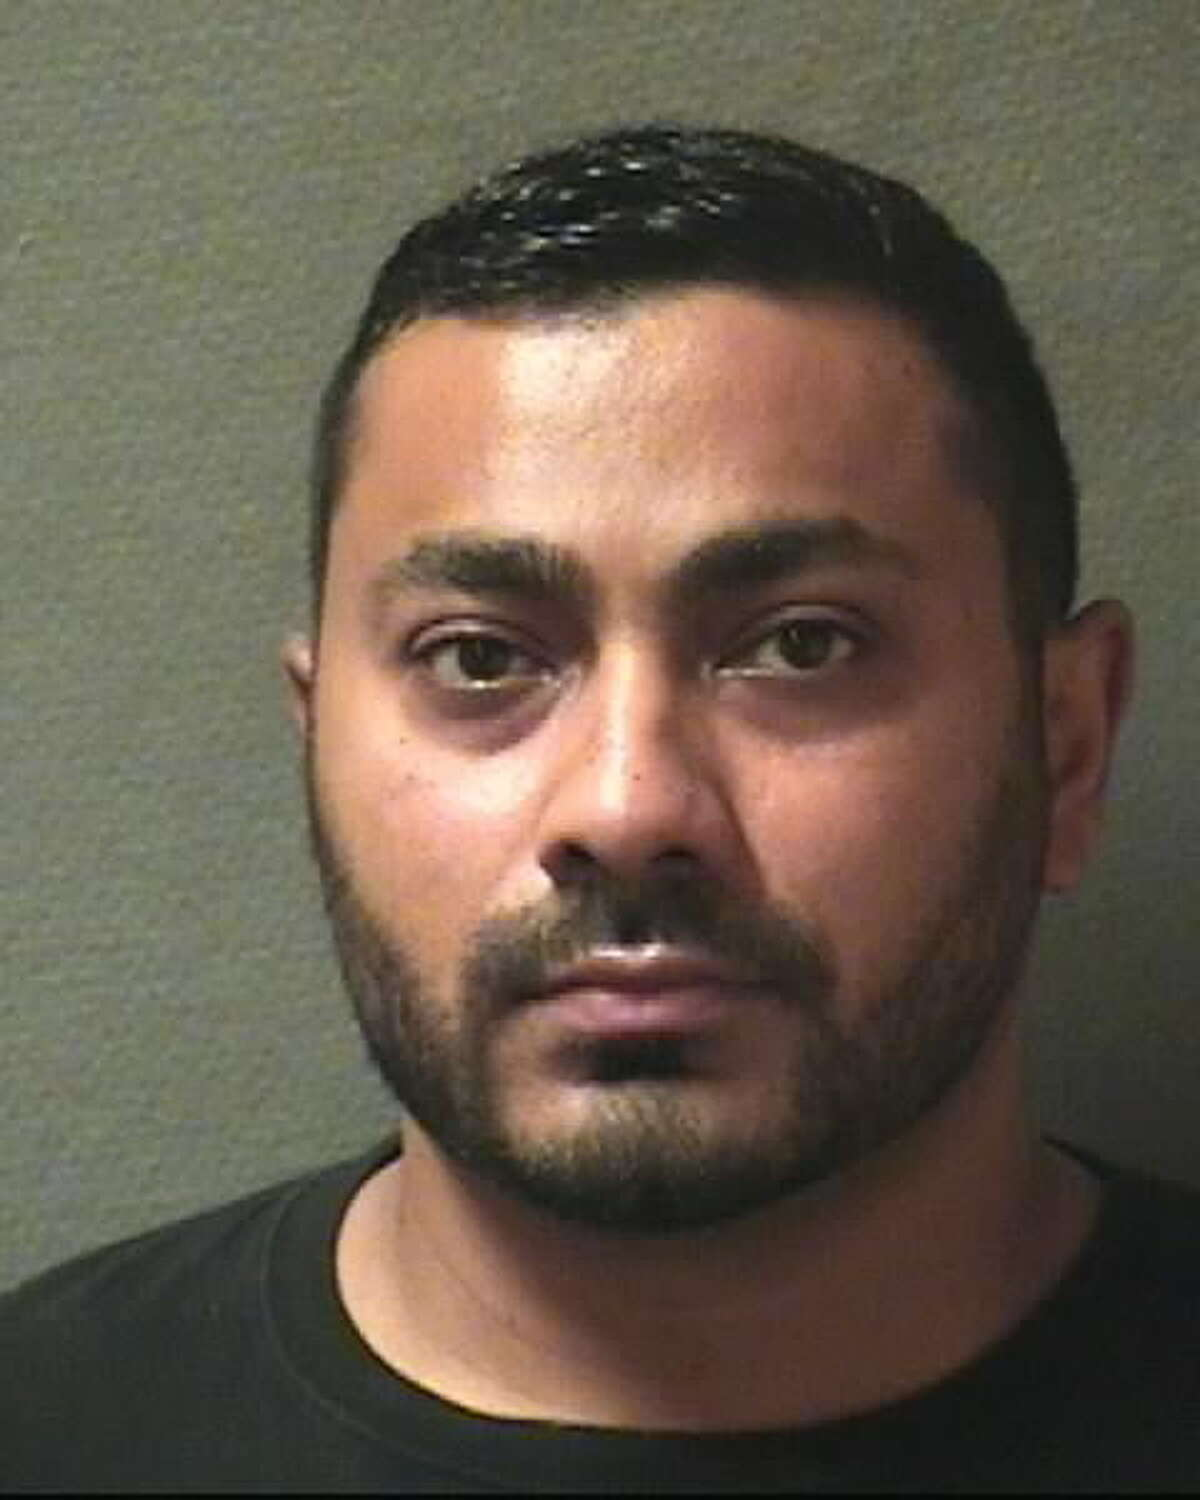 Nofil Amin, 32, was charged with prostitution following a Houston Police Vice Division initiative Nov. 10, 2015 in northeast Houston.